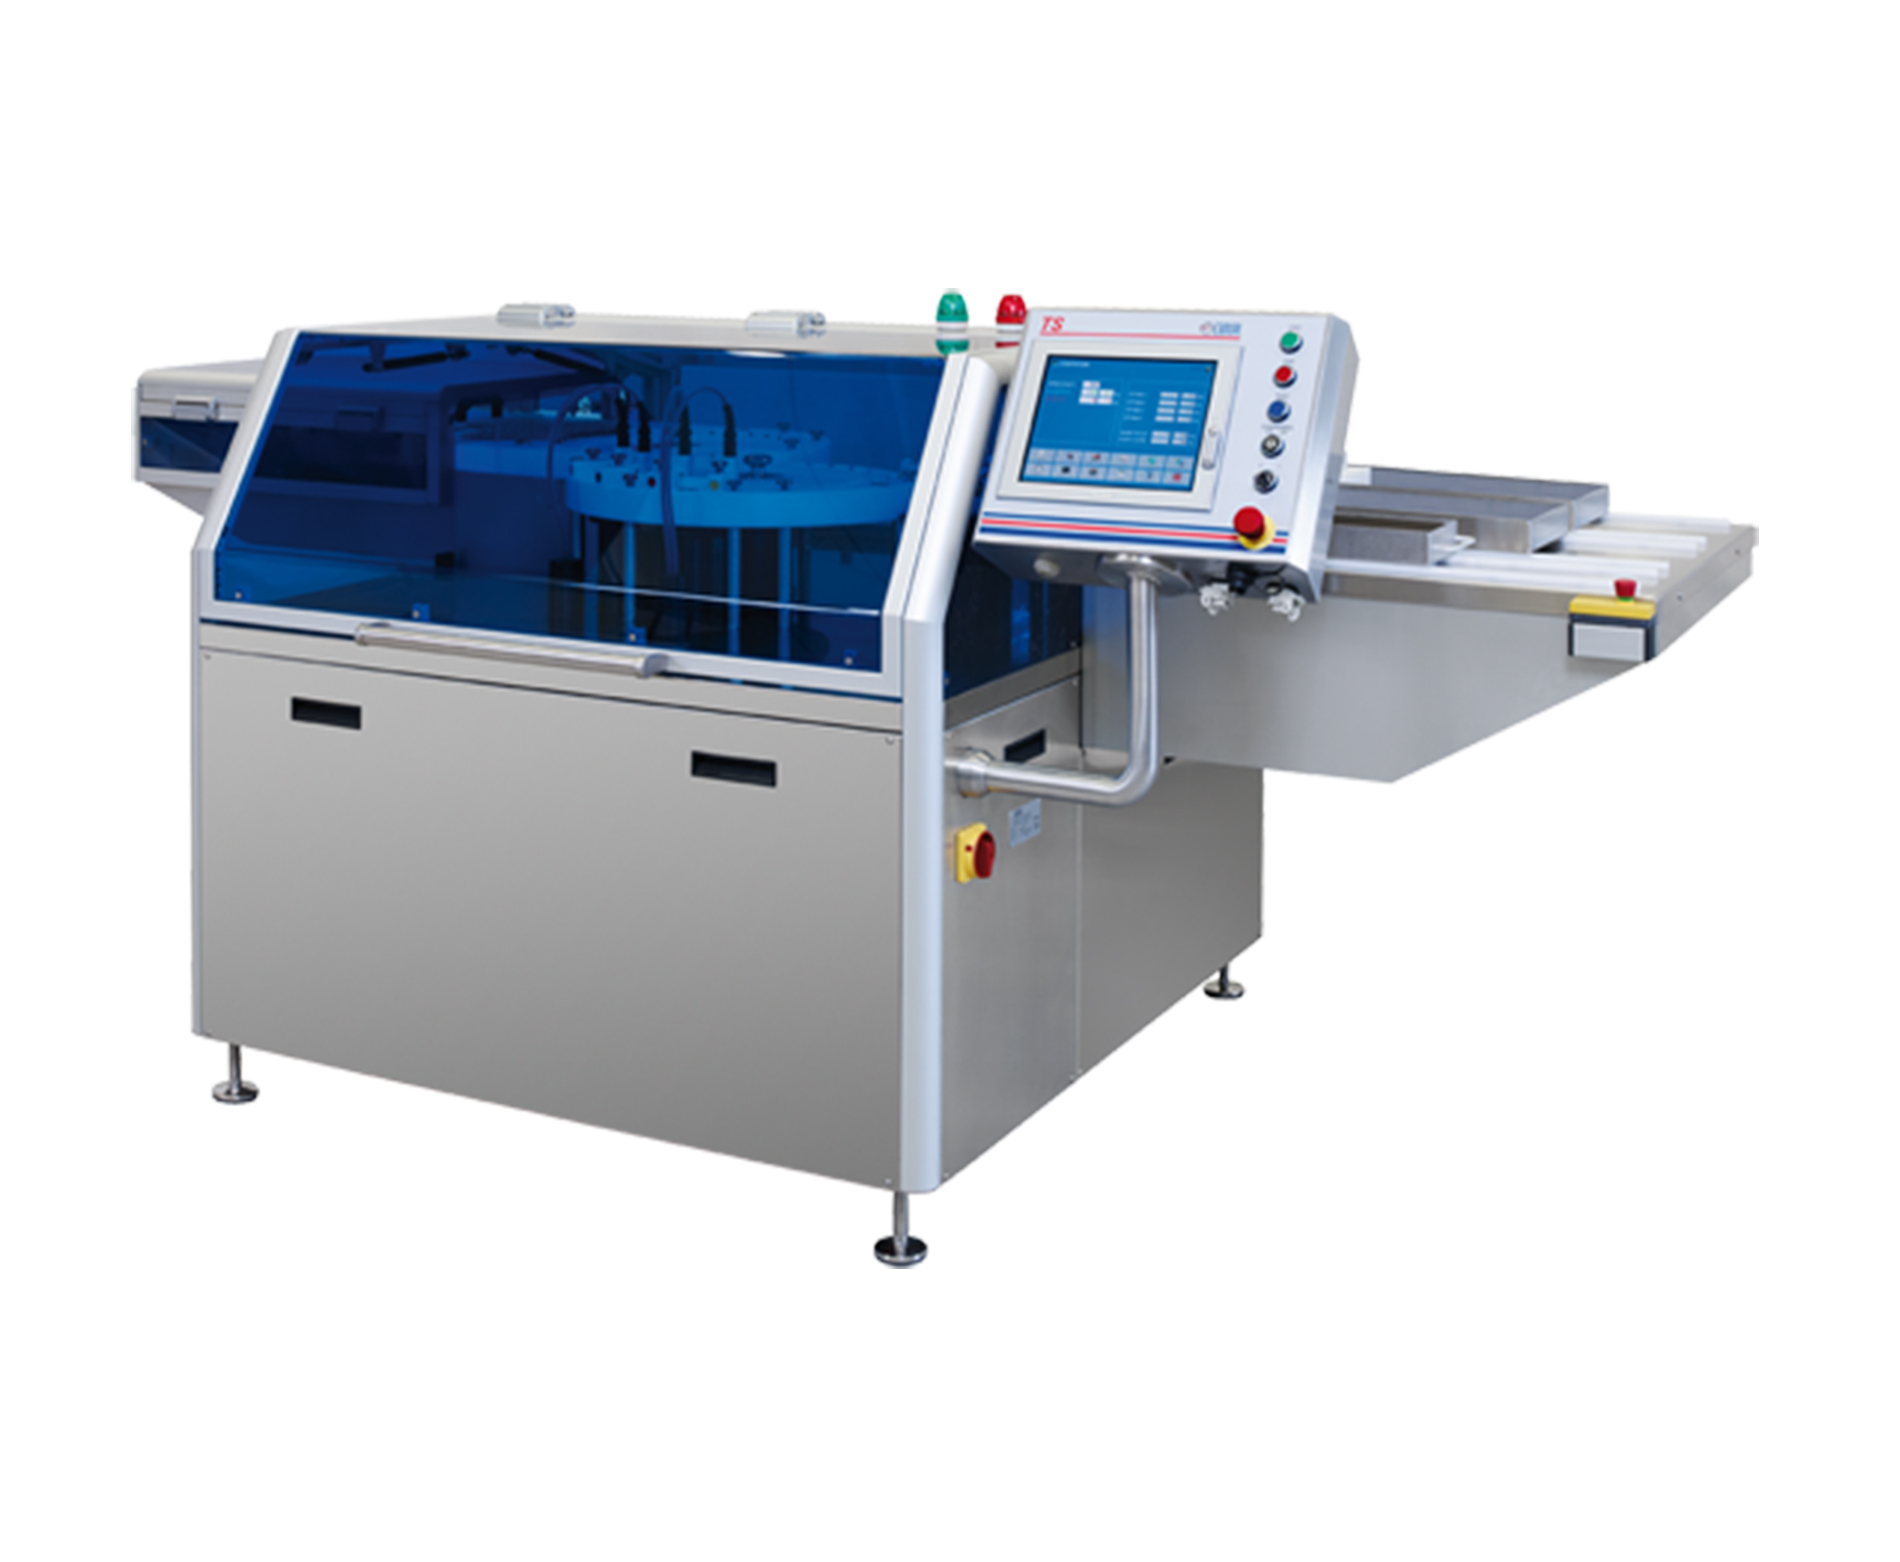 503B compounding equipment